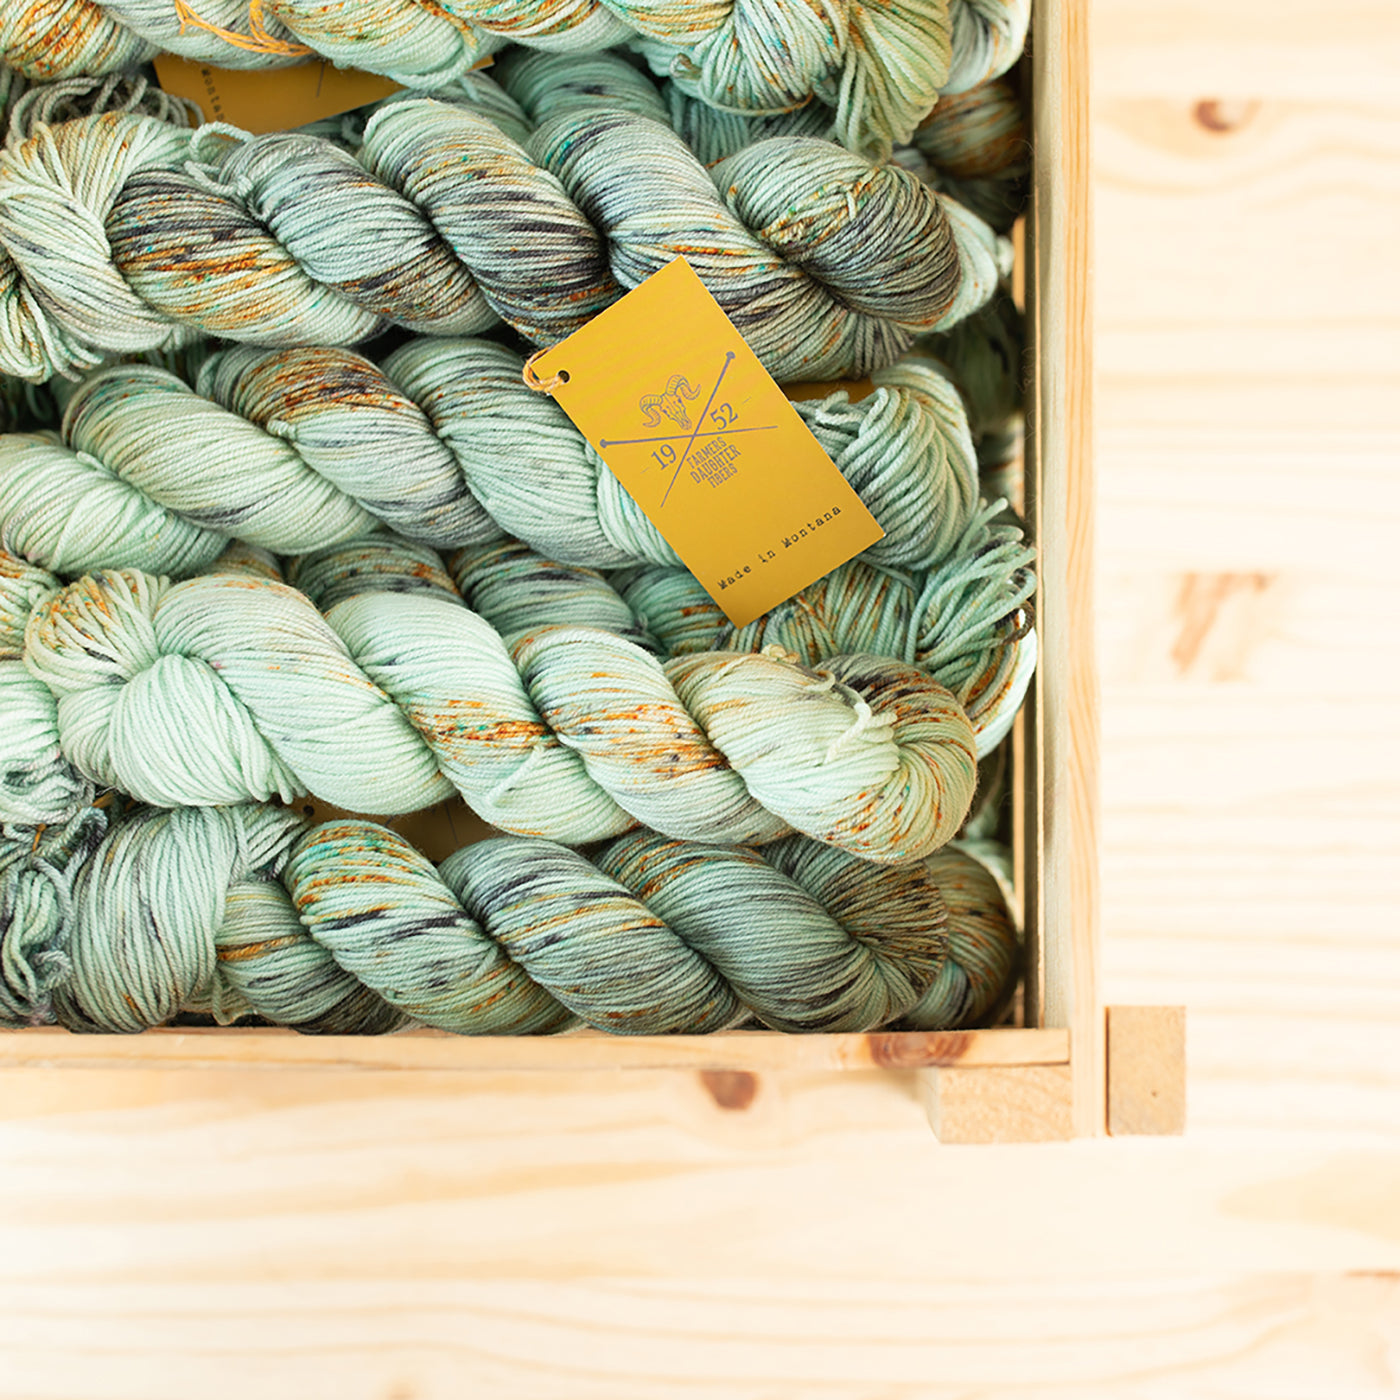 This is an image of a wooden box full of mint colored yarn.